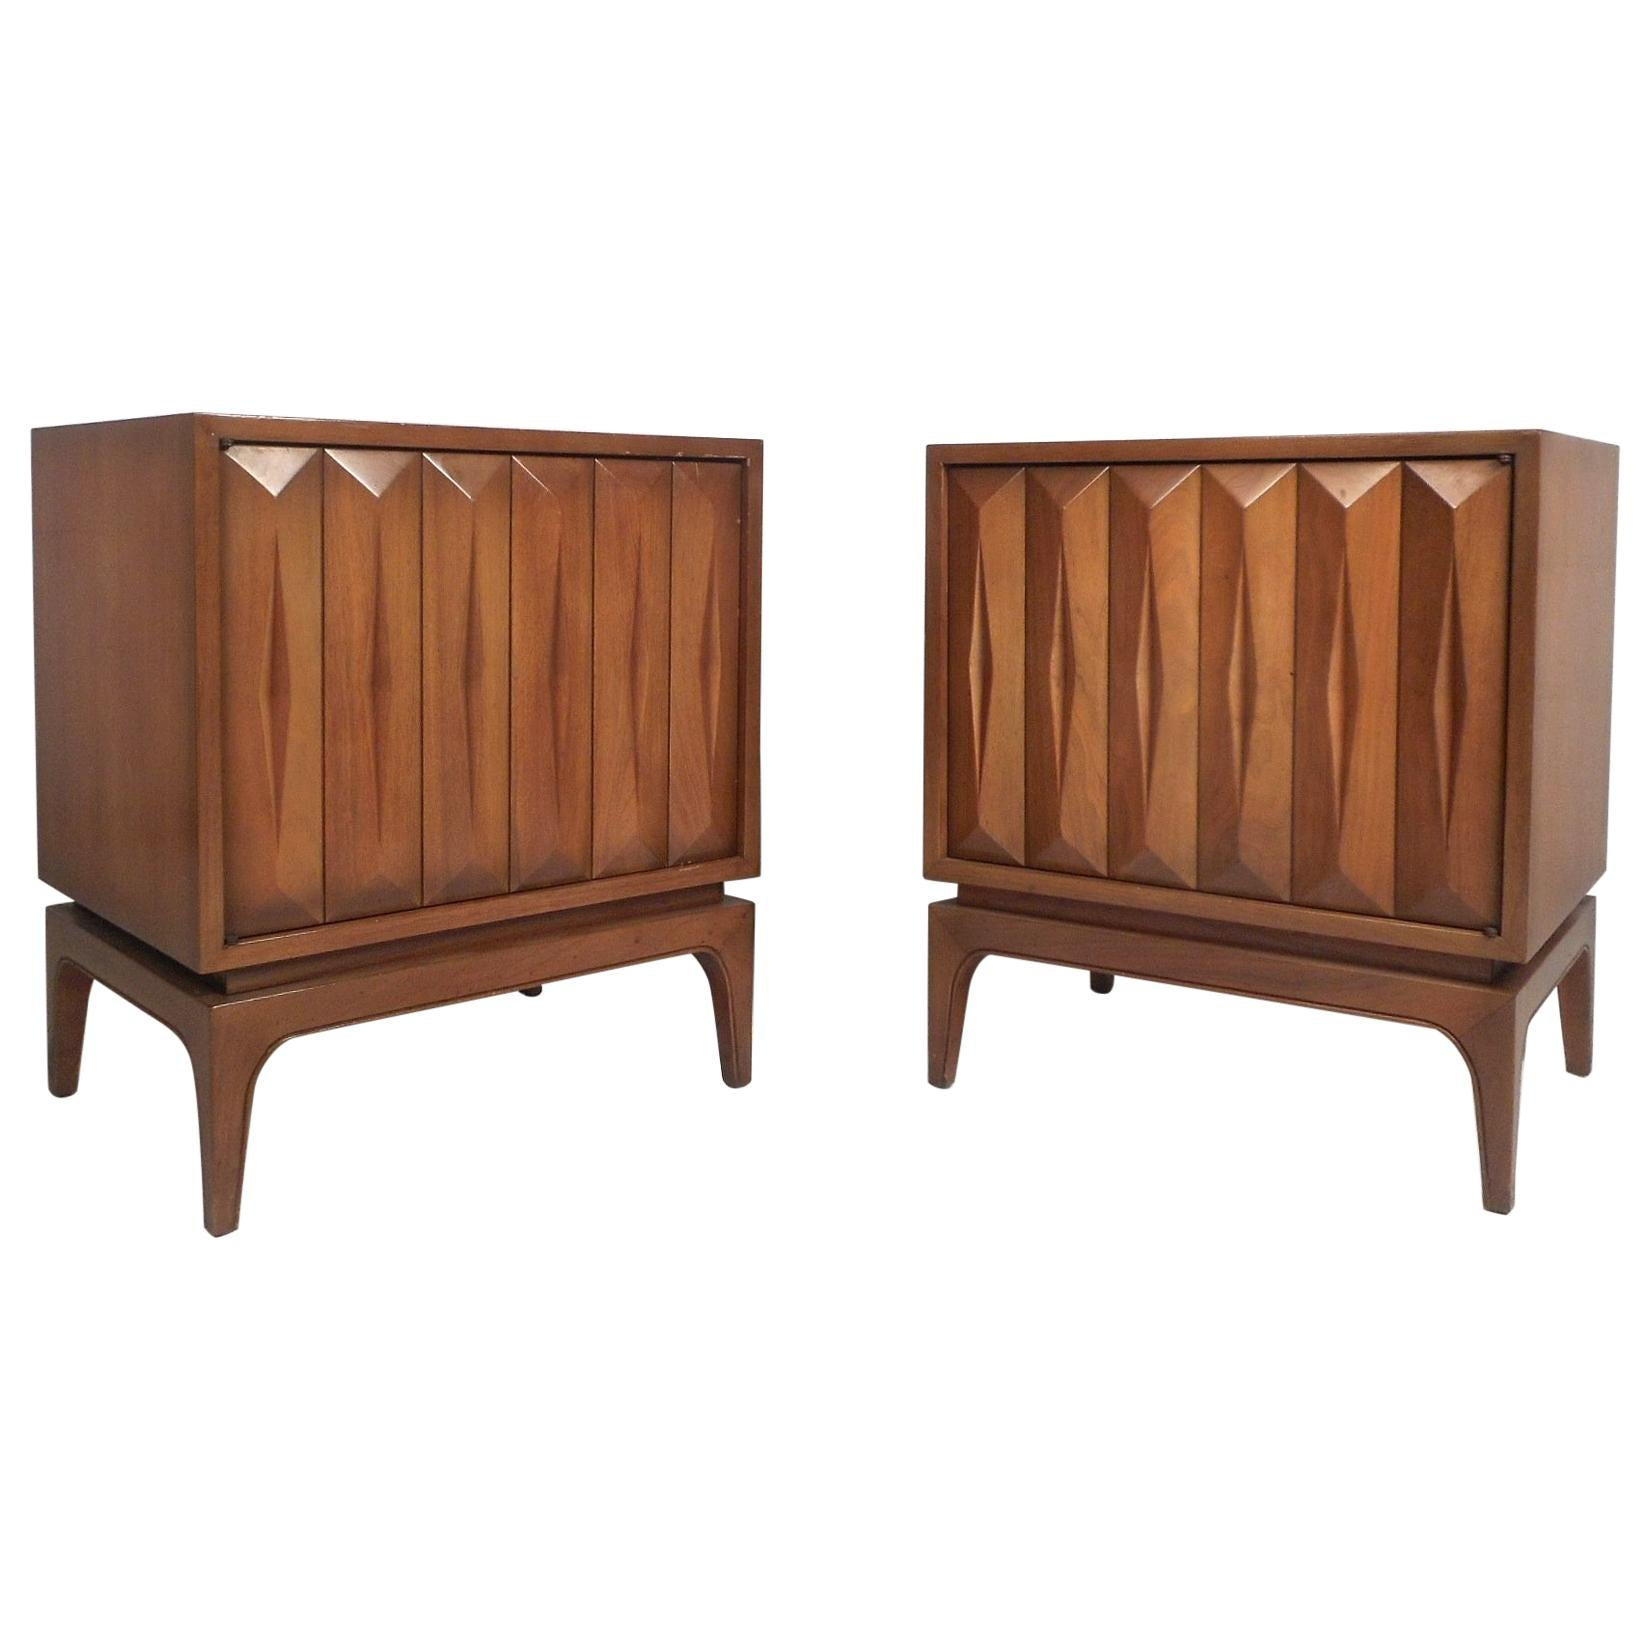 Pair of Midcentury Walnut Nightstands